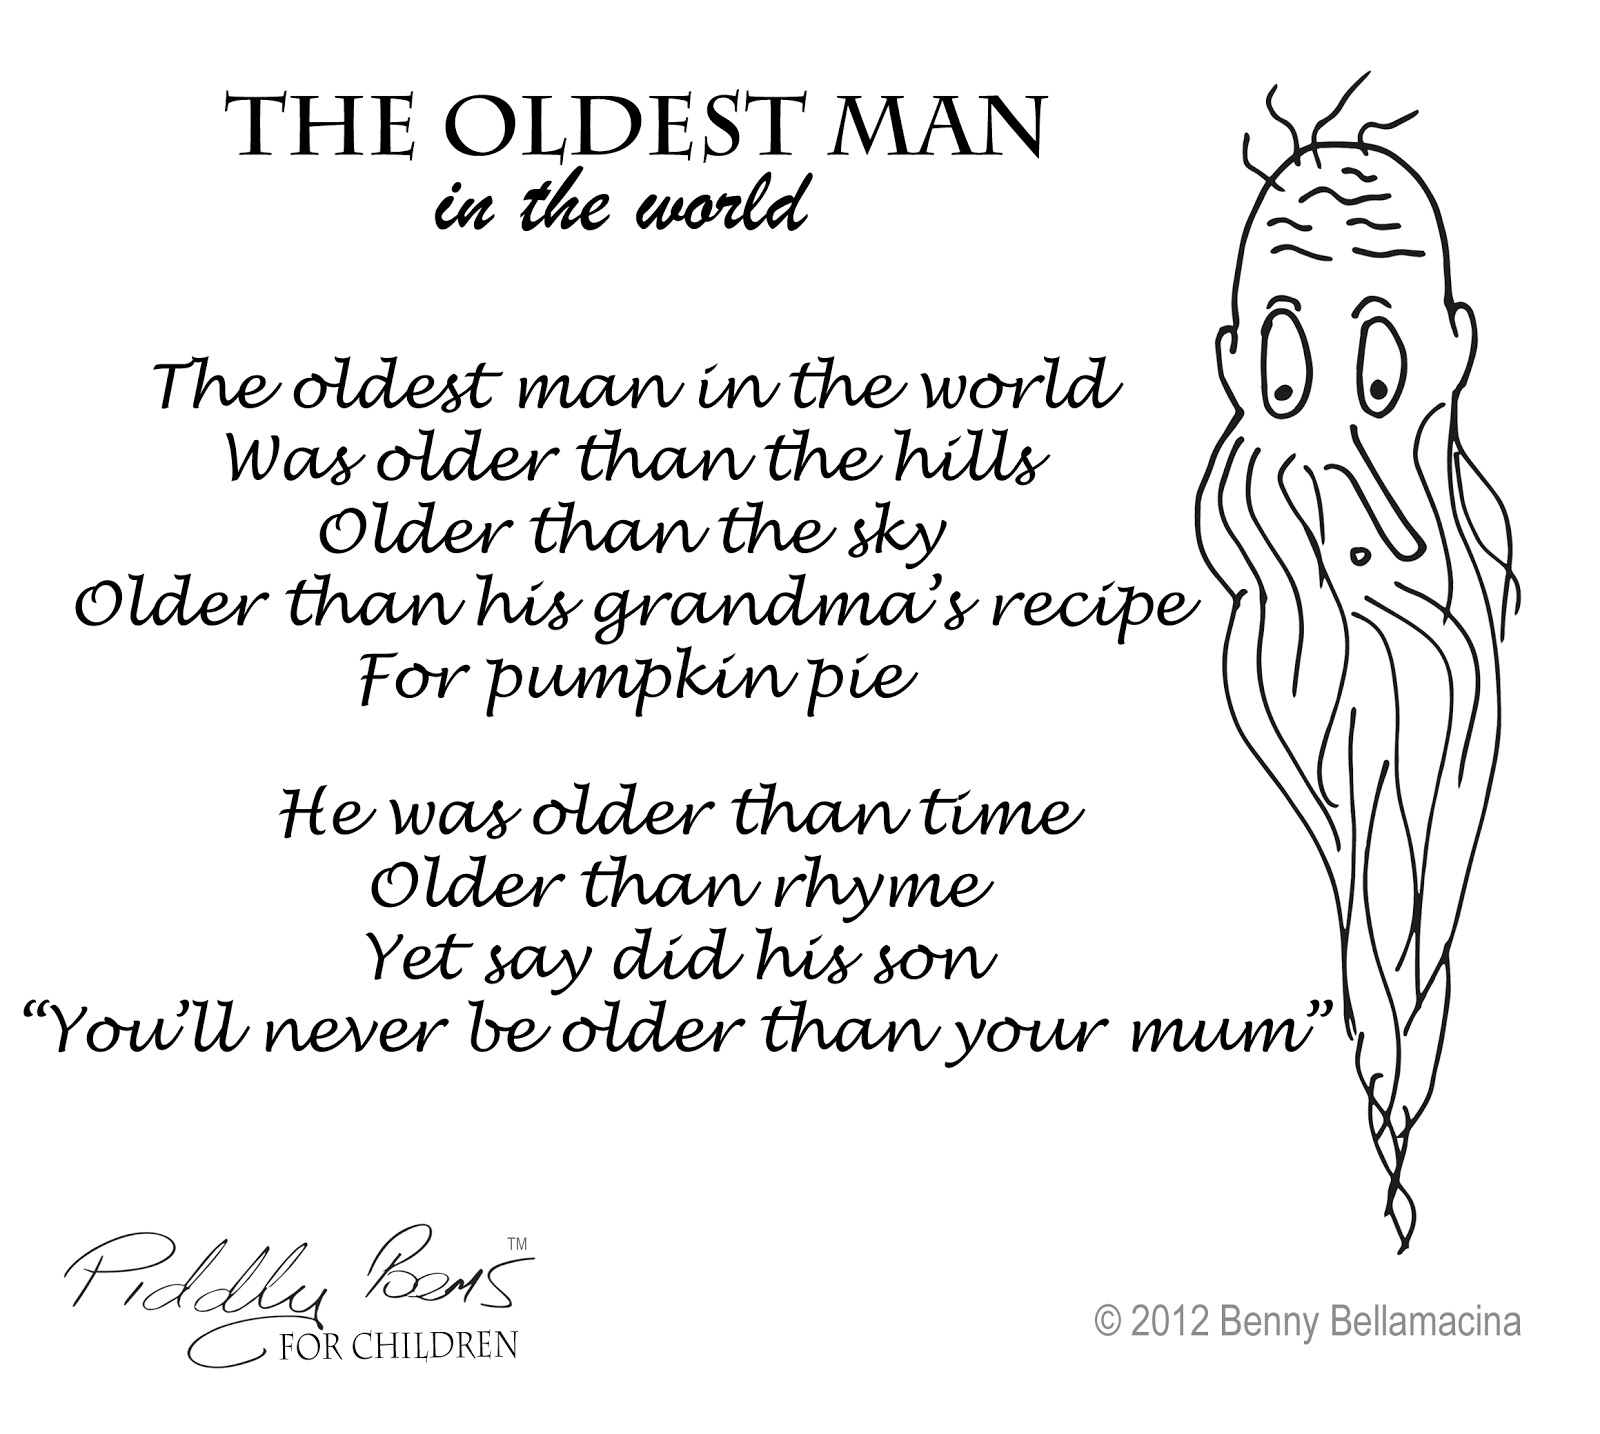 Piddly poems: The oldest man in the world